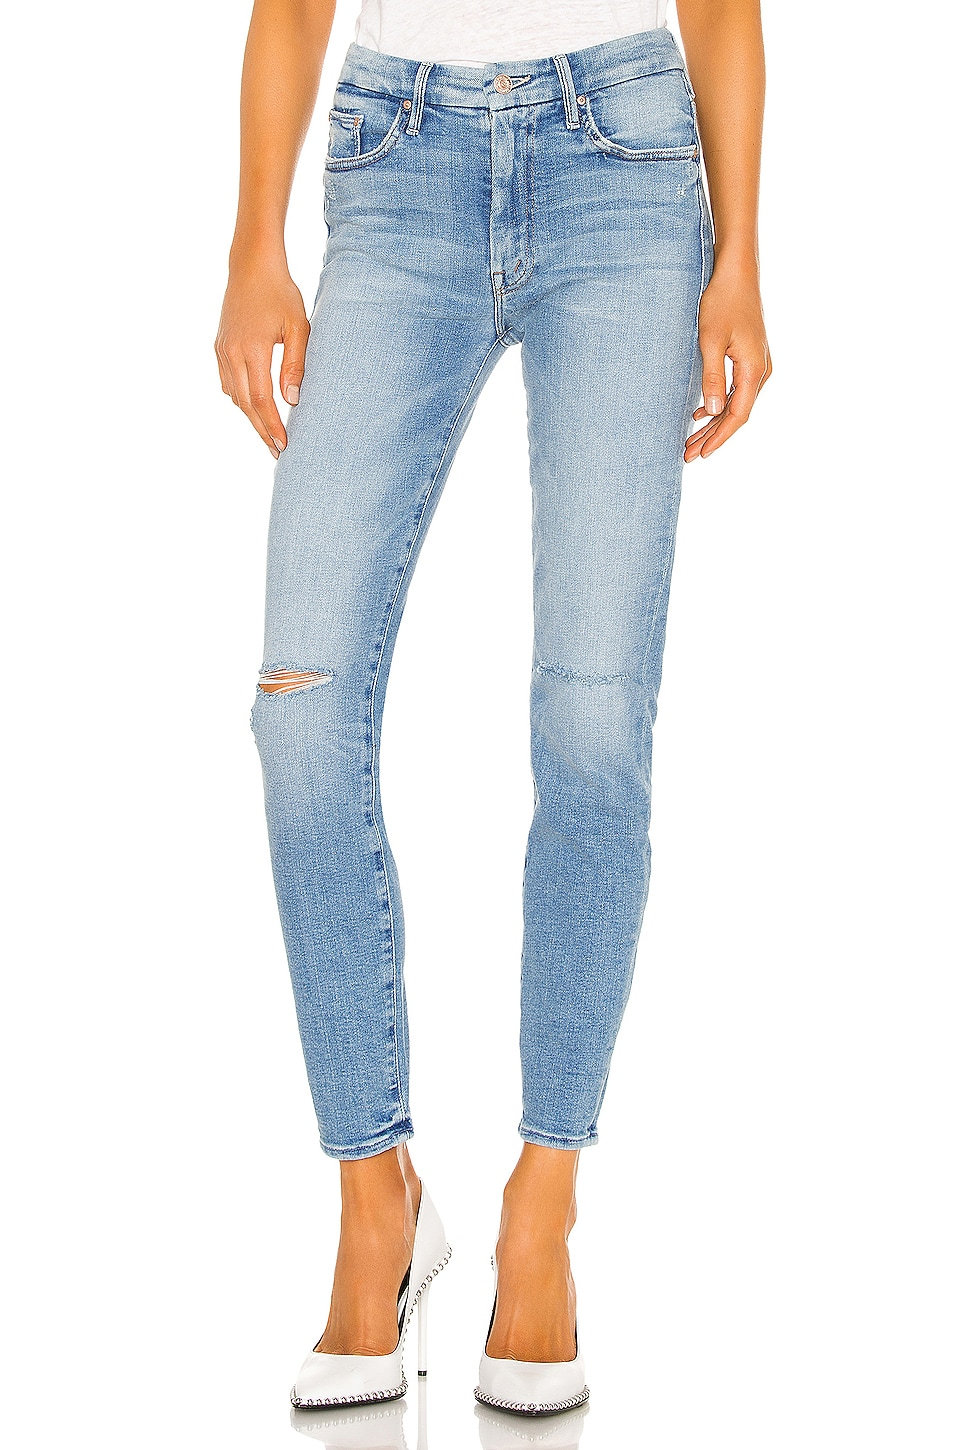 High Waisted Looker                   MOTHER                                                                                                                             CA$ 324.32 8